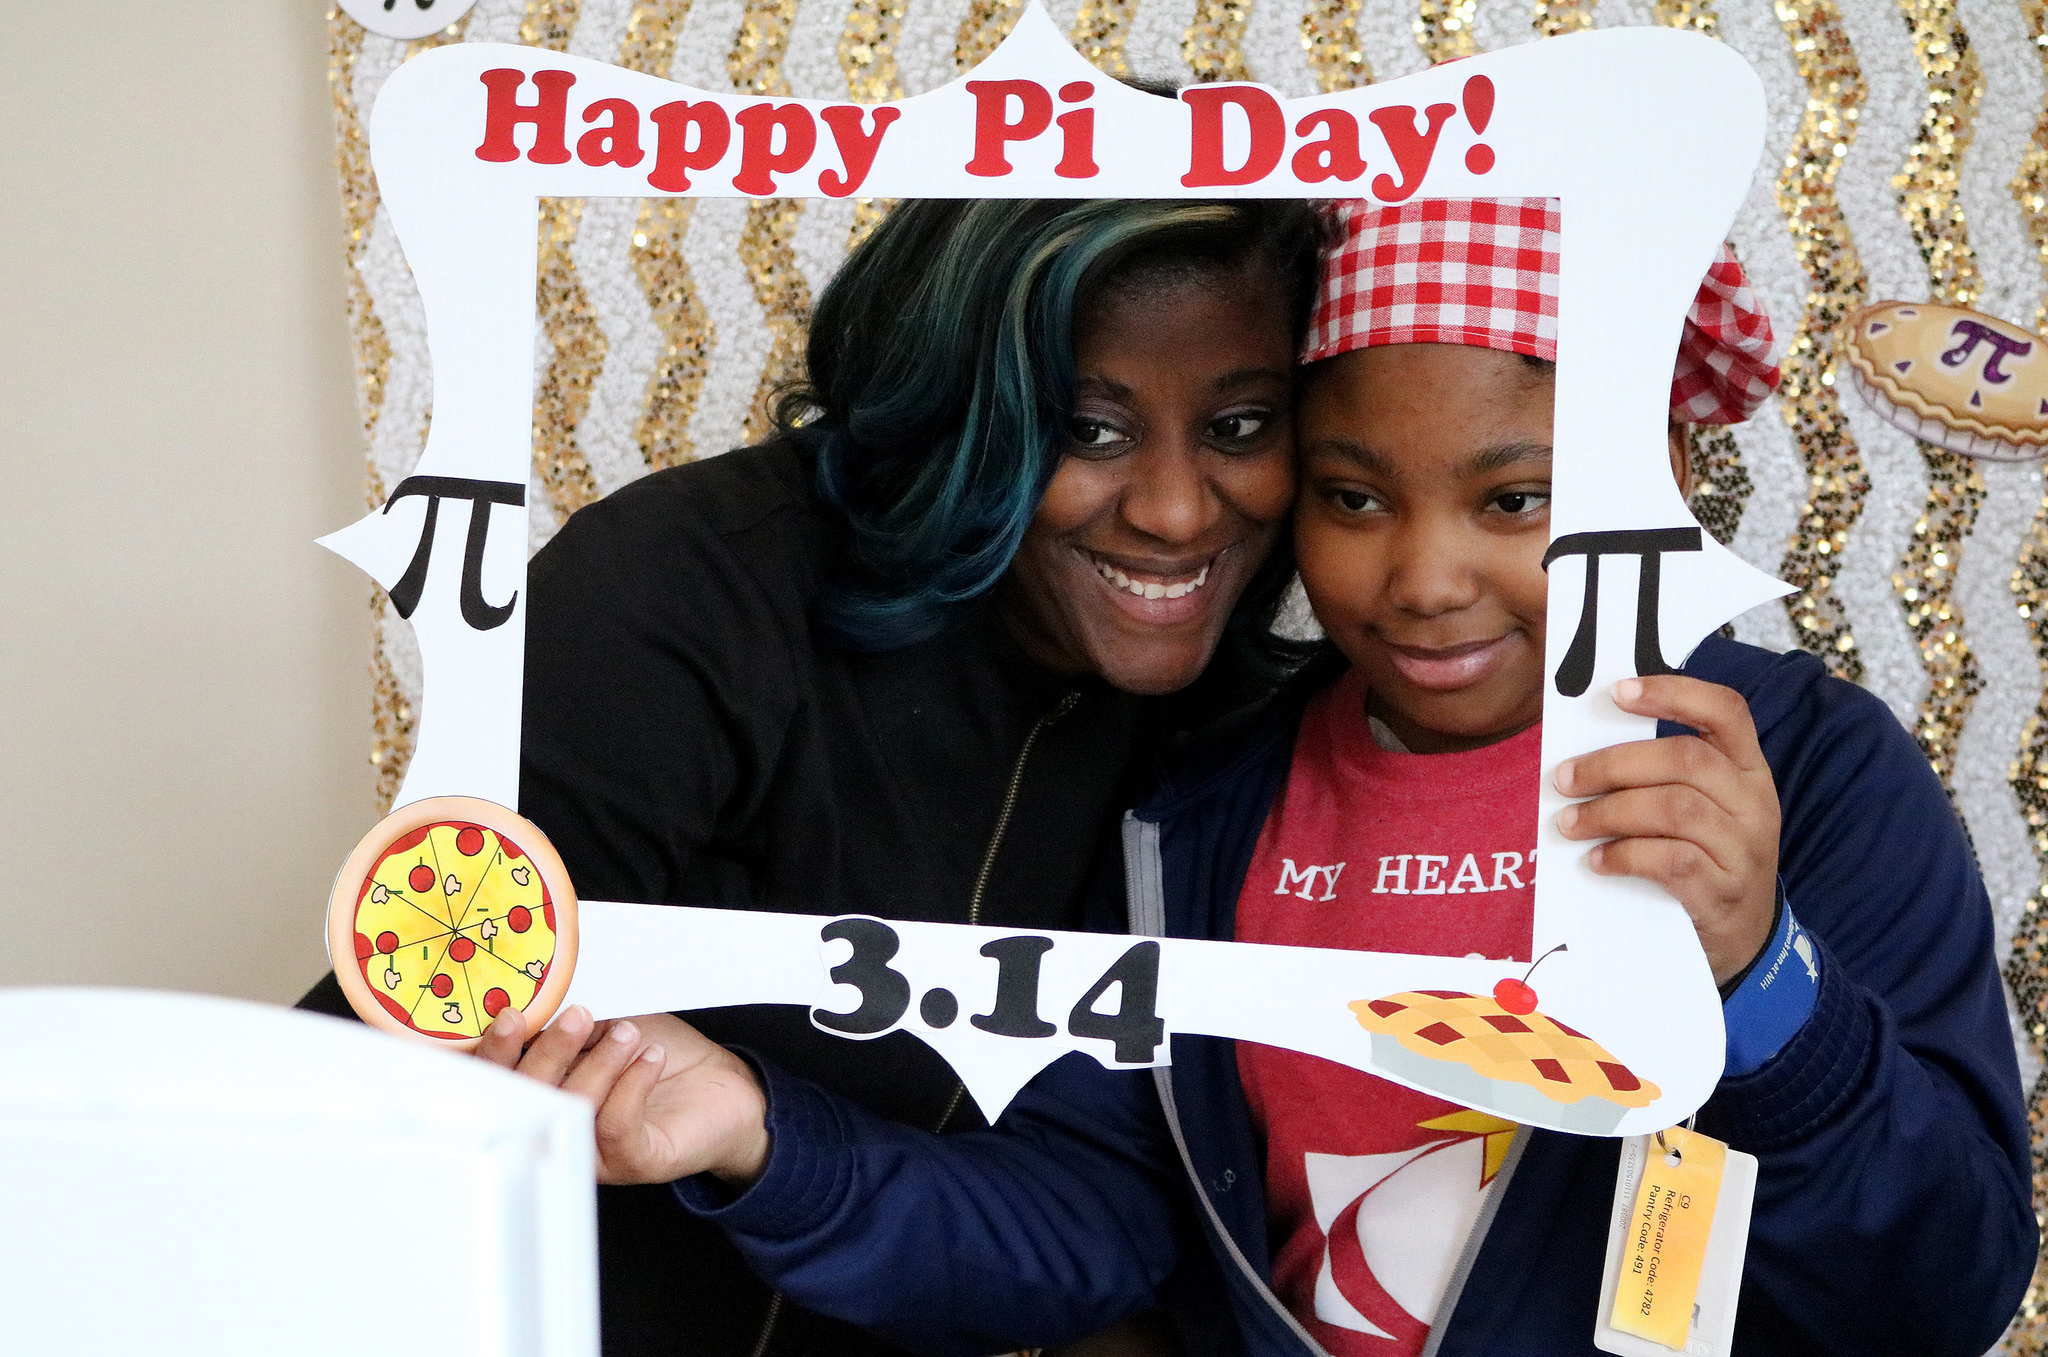 Danielle on pi day